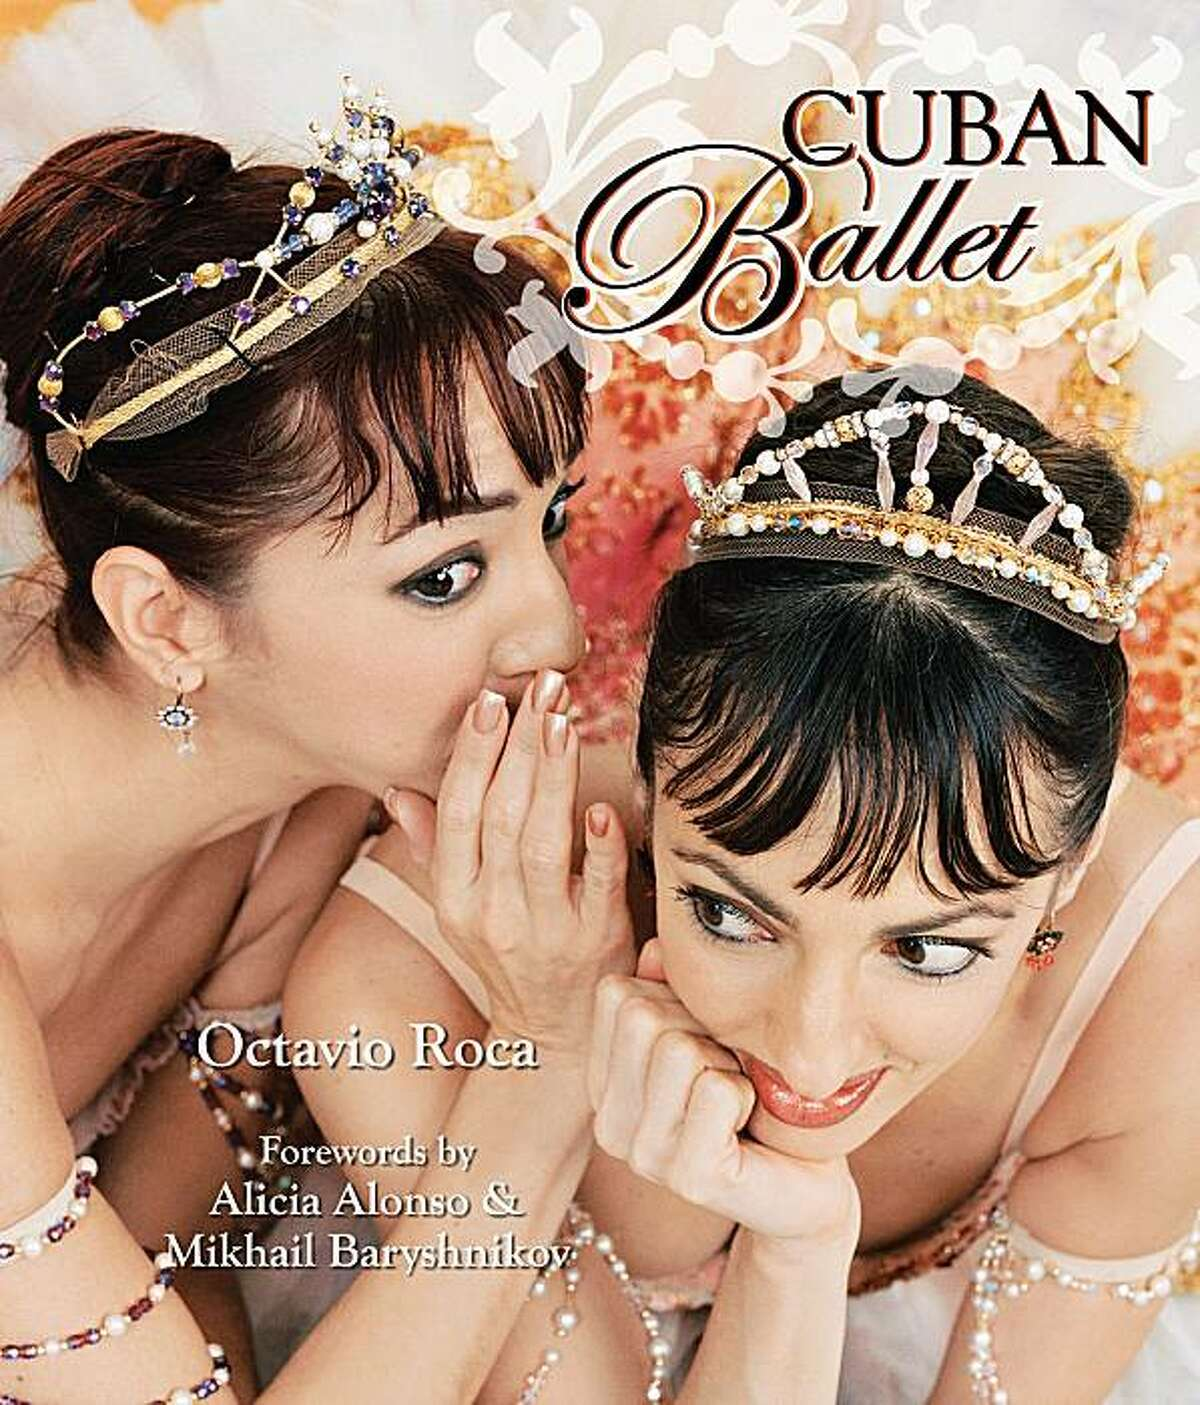 Lorna Feijoo, left, and her sister, Lorena, who is now dancing with San Francisco Ballet, are among the Cuban dancers featured in the new book by Octavio Roca